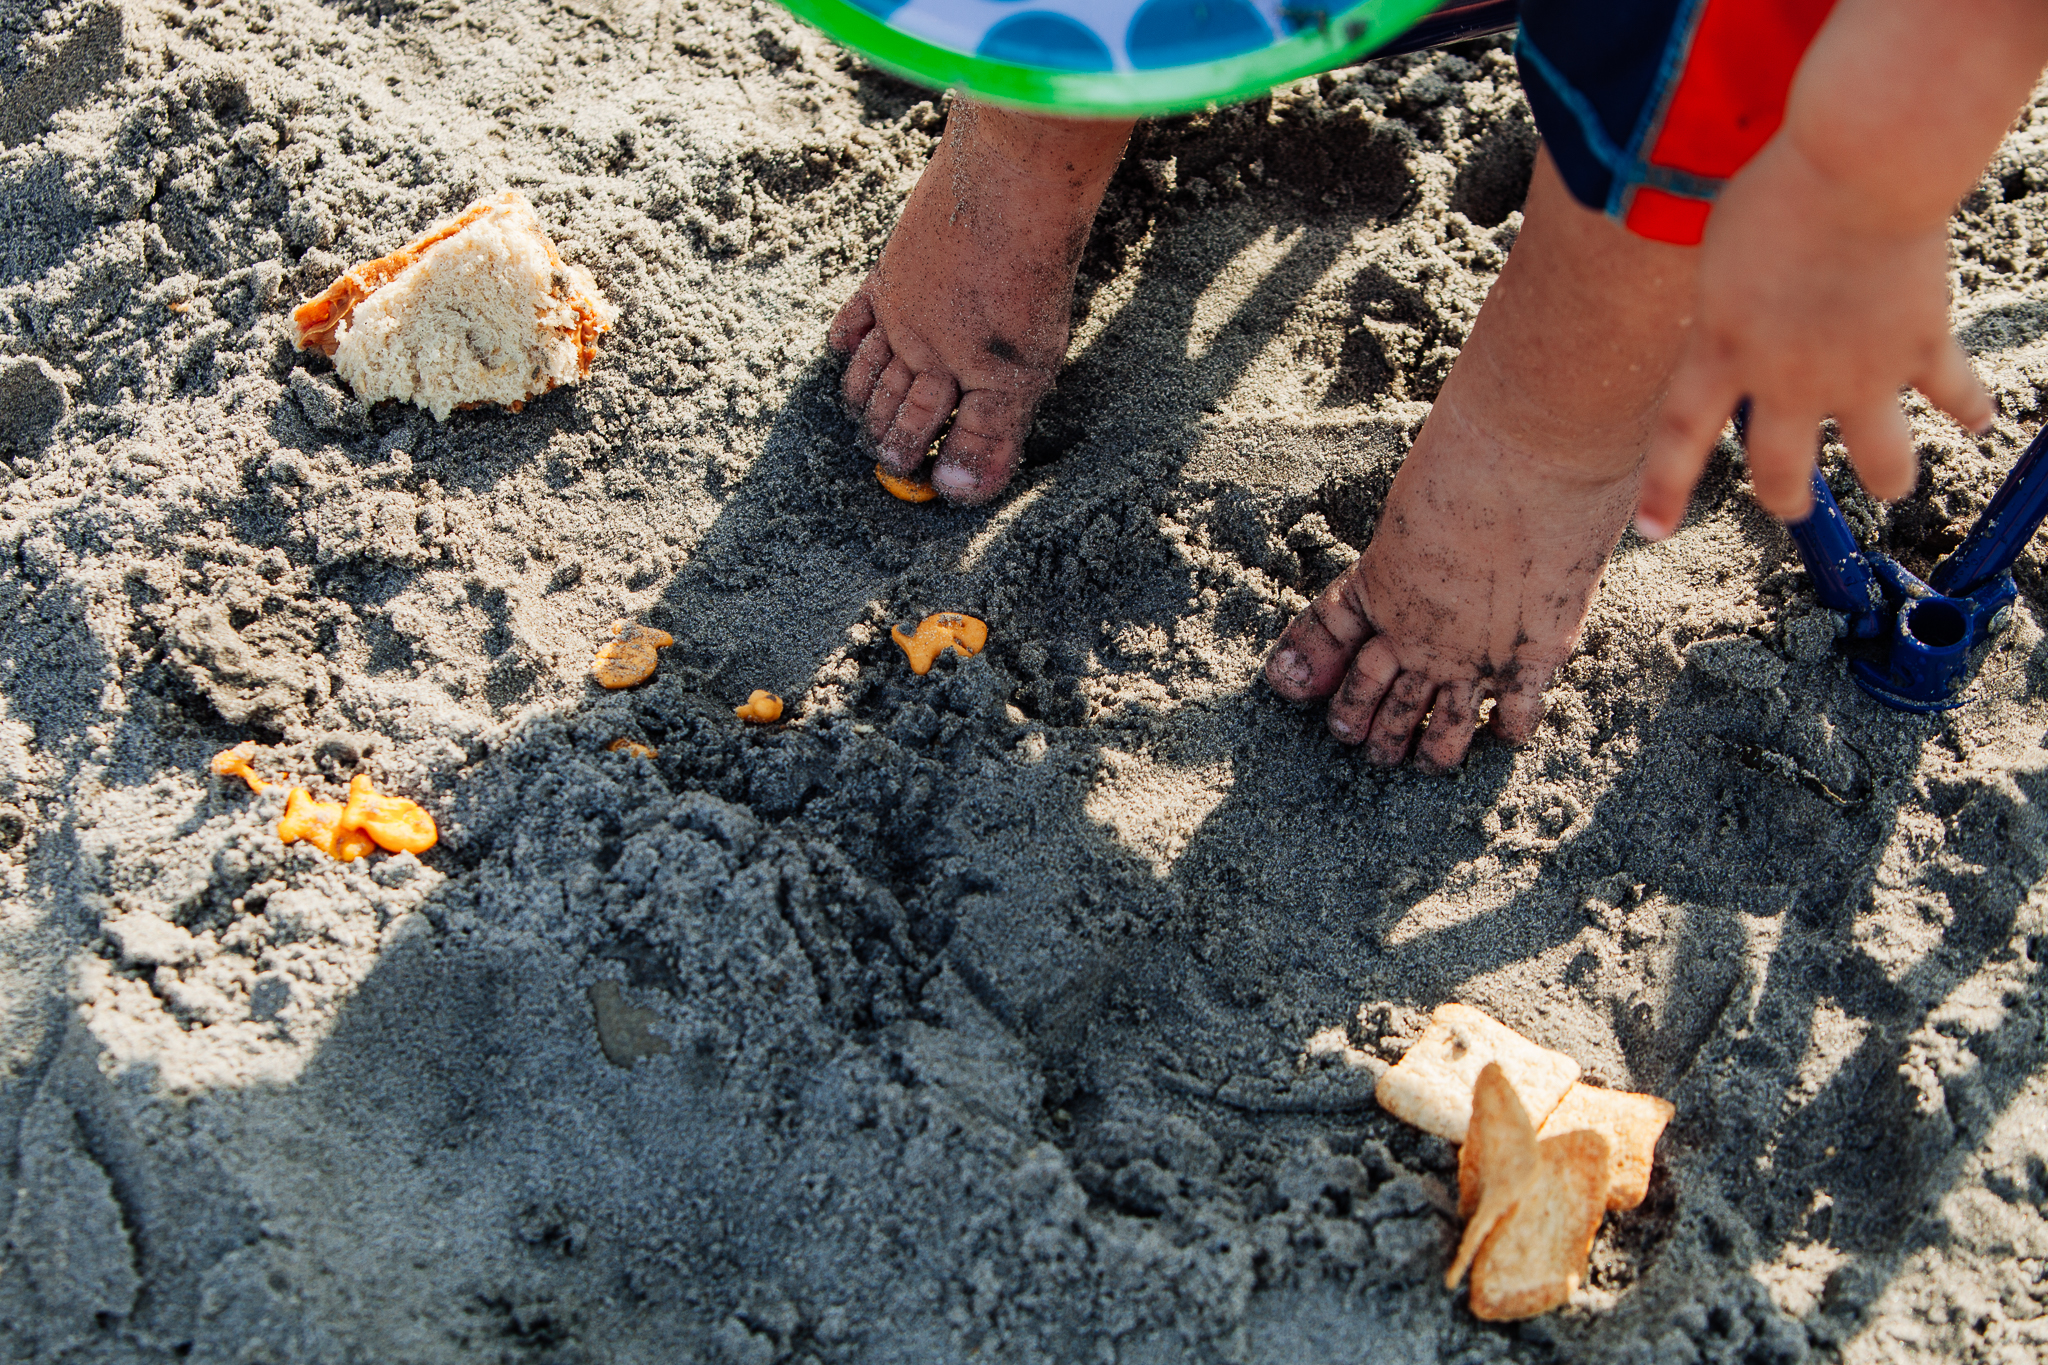 tiny toes in sand surrounded by spilled food